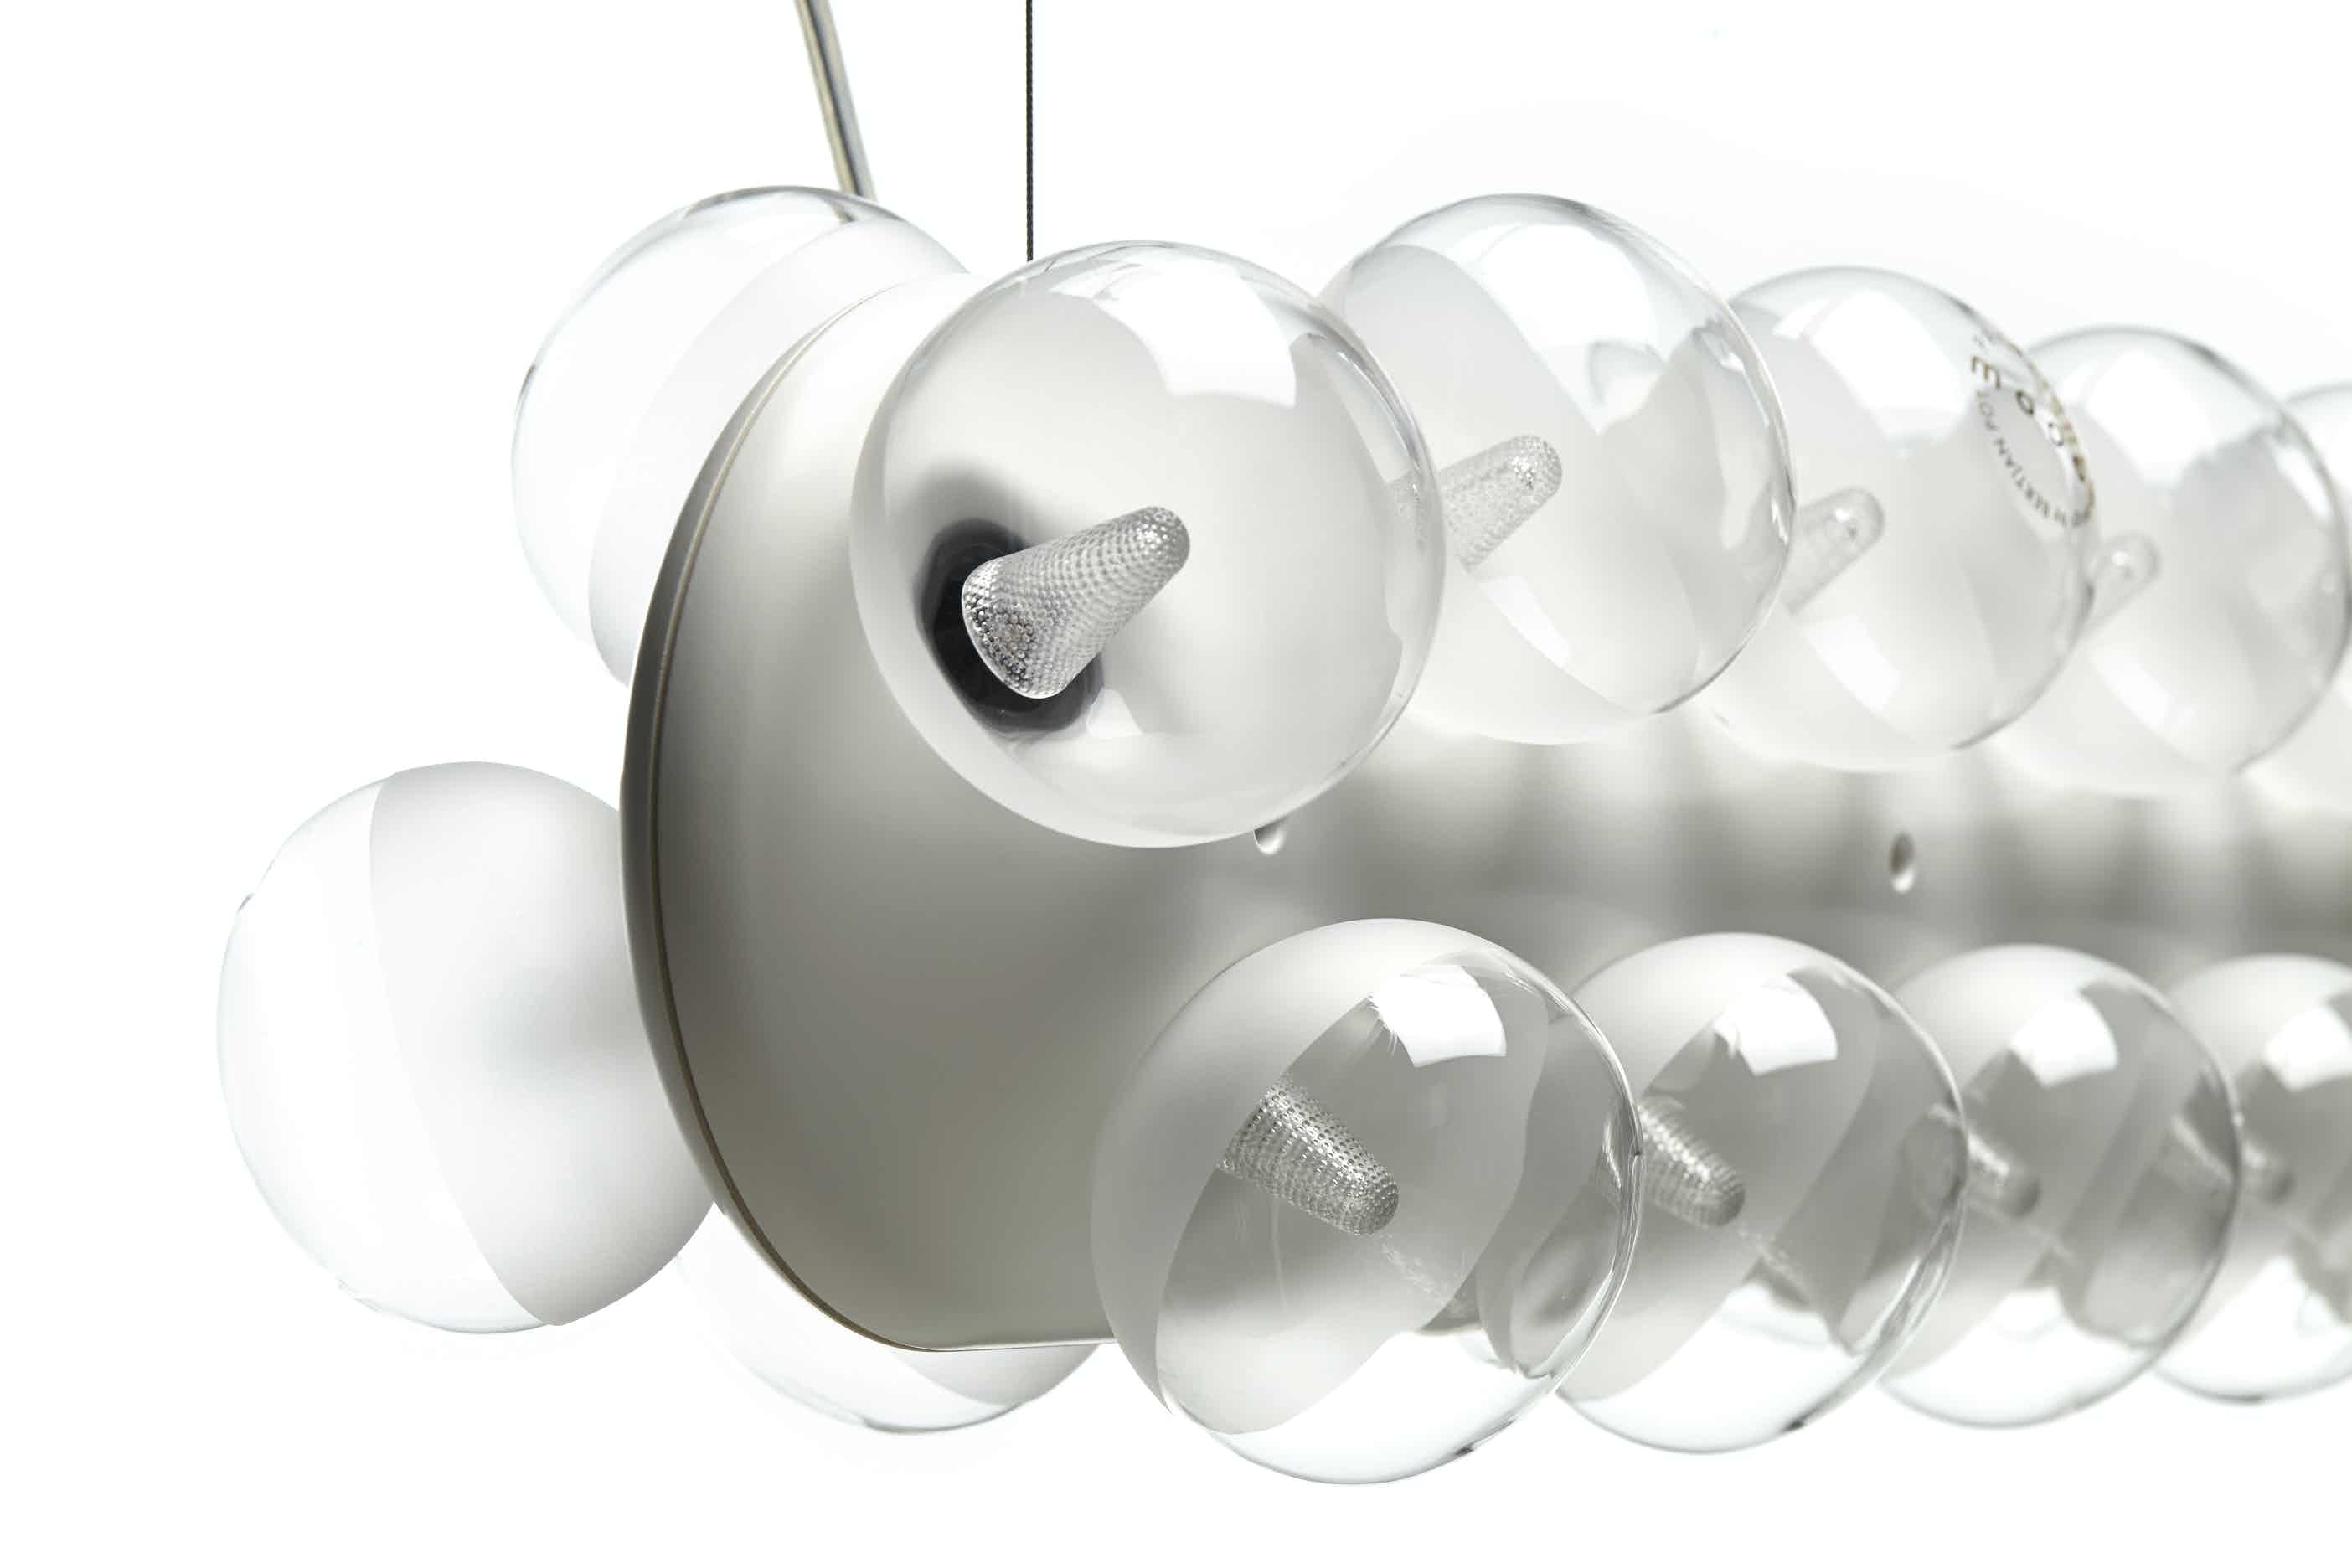 Moooi-prop-light-unlit-side-bulbs-haute-living